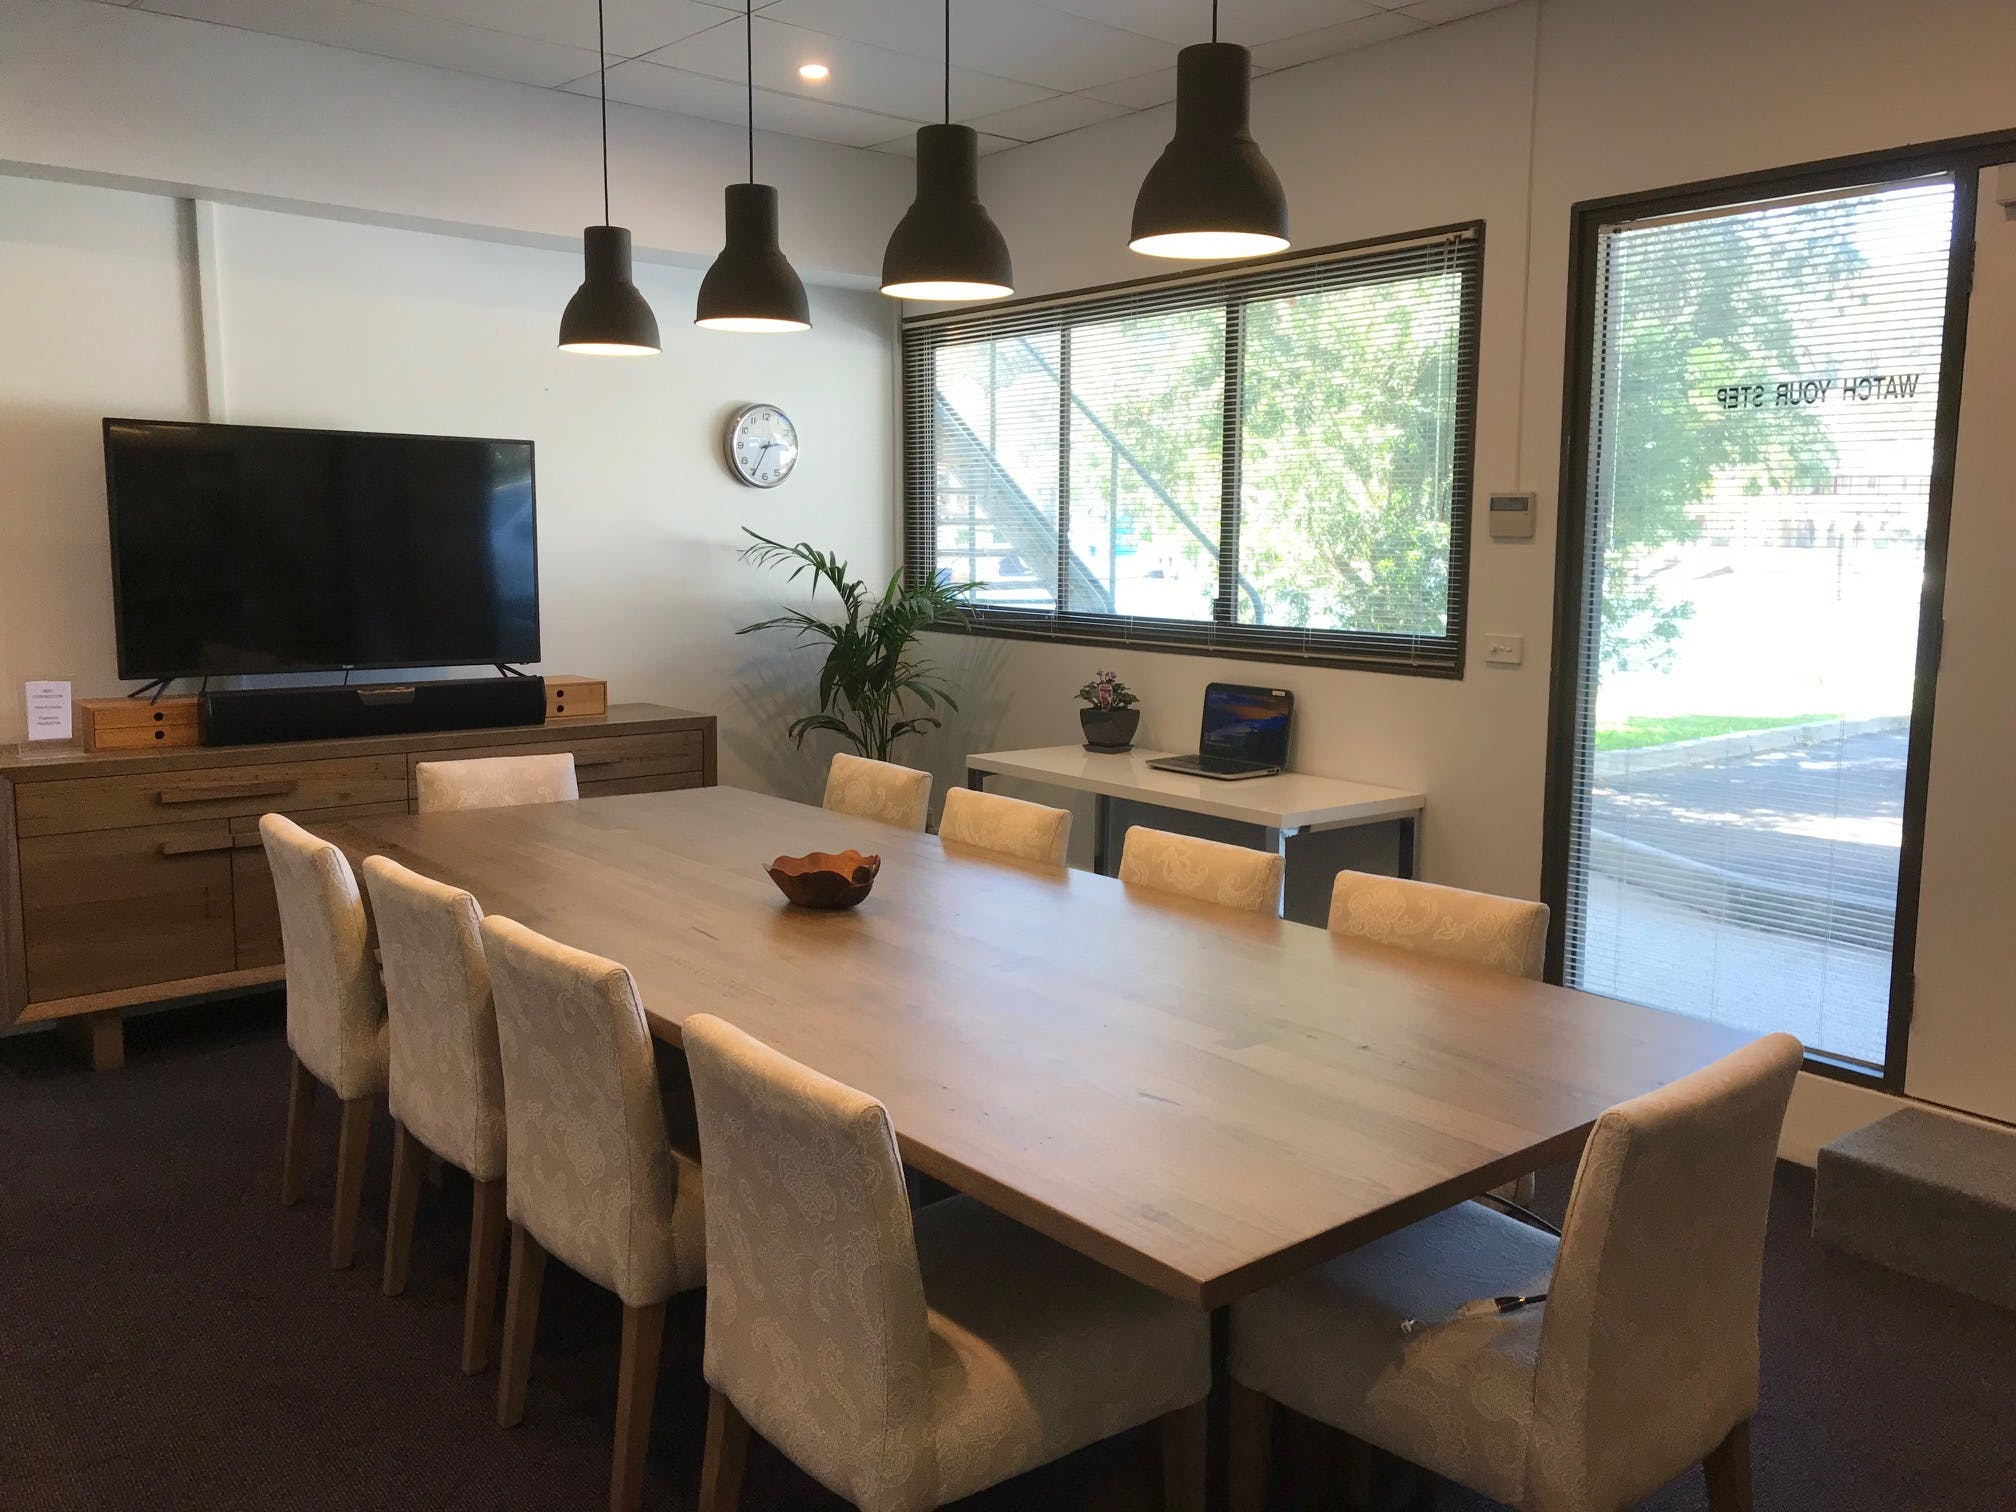 Princes Street Marina, meeting room at Crystal Bay Board Room, image 1